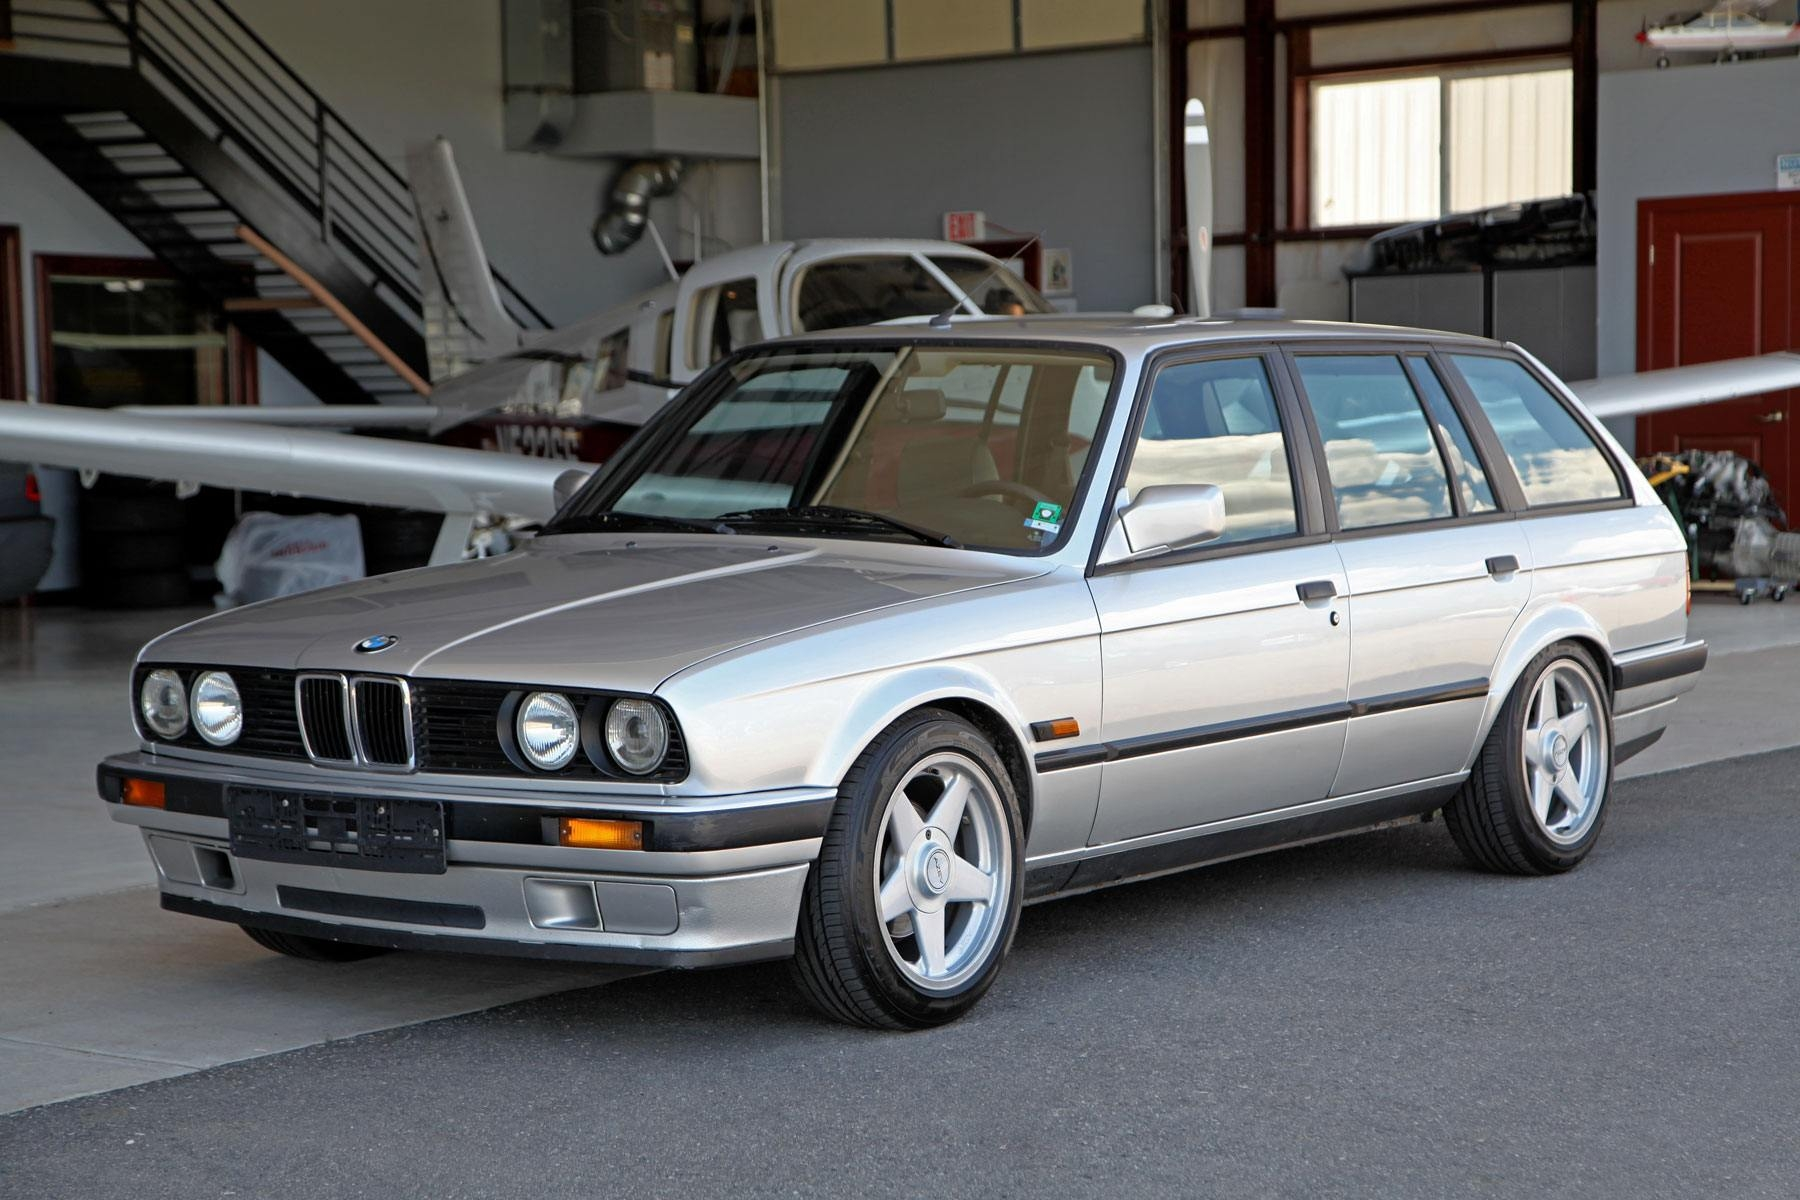 1990 bmw e30 318i touring glen shelly auto brokers denver colorado. Black Bedroom Furniture Sets. Home Design Ideas